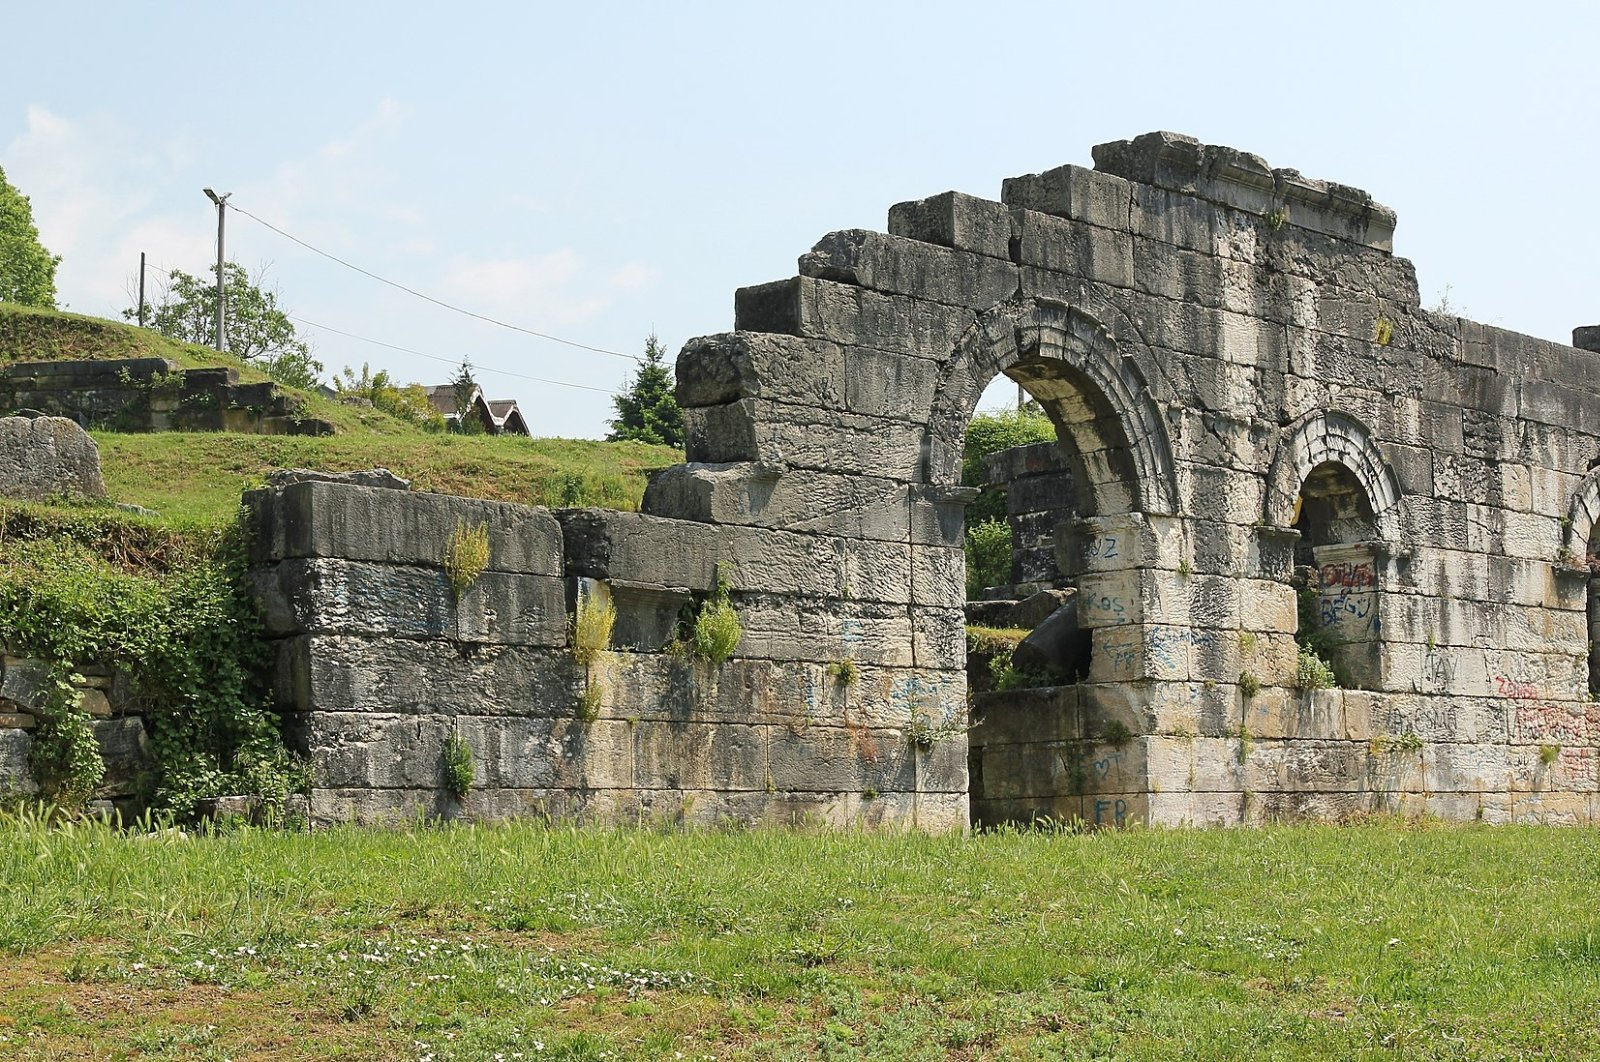 Scaenae frons, the elaborately decorated permanent architectural background of a Roman theater stage, in the ancient city of Prusias ad Hypium in Düzce, northwestern Turkey.